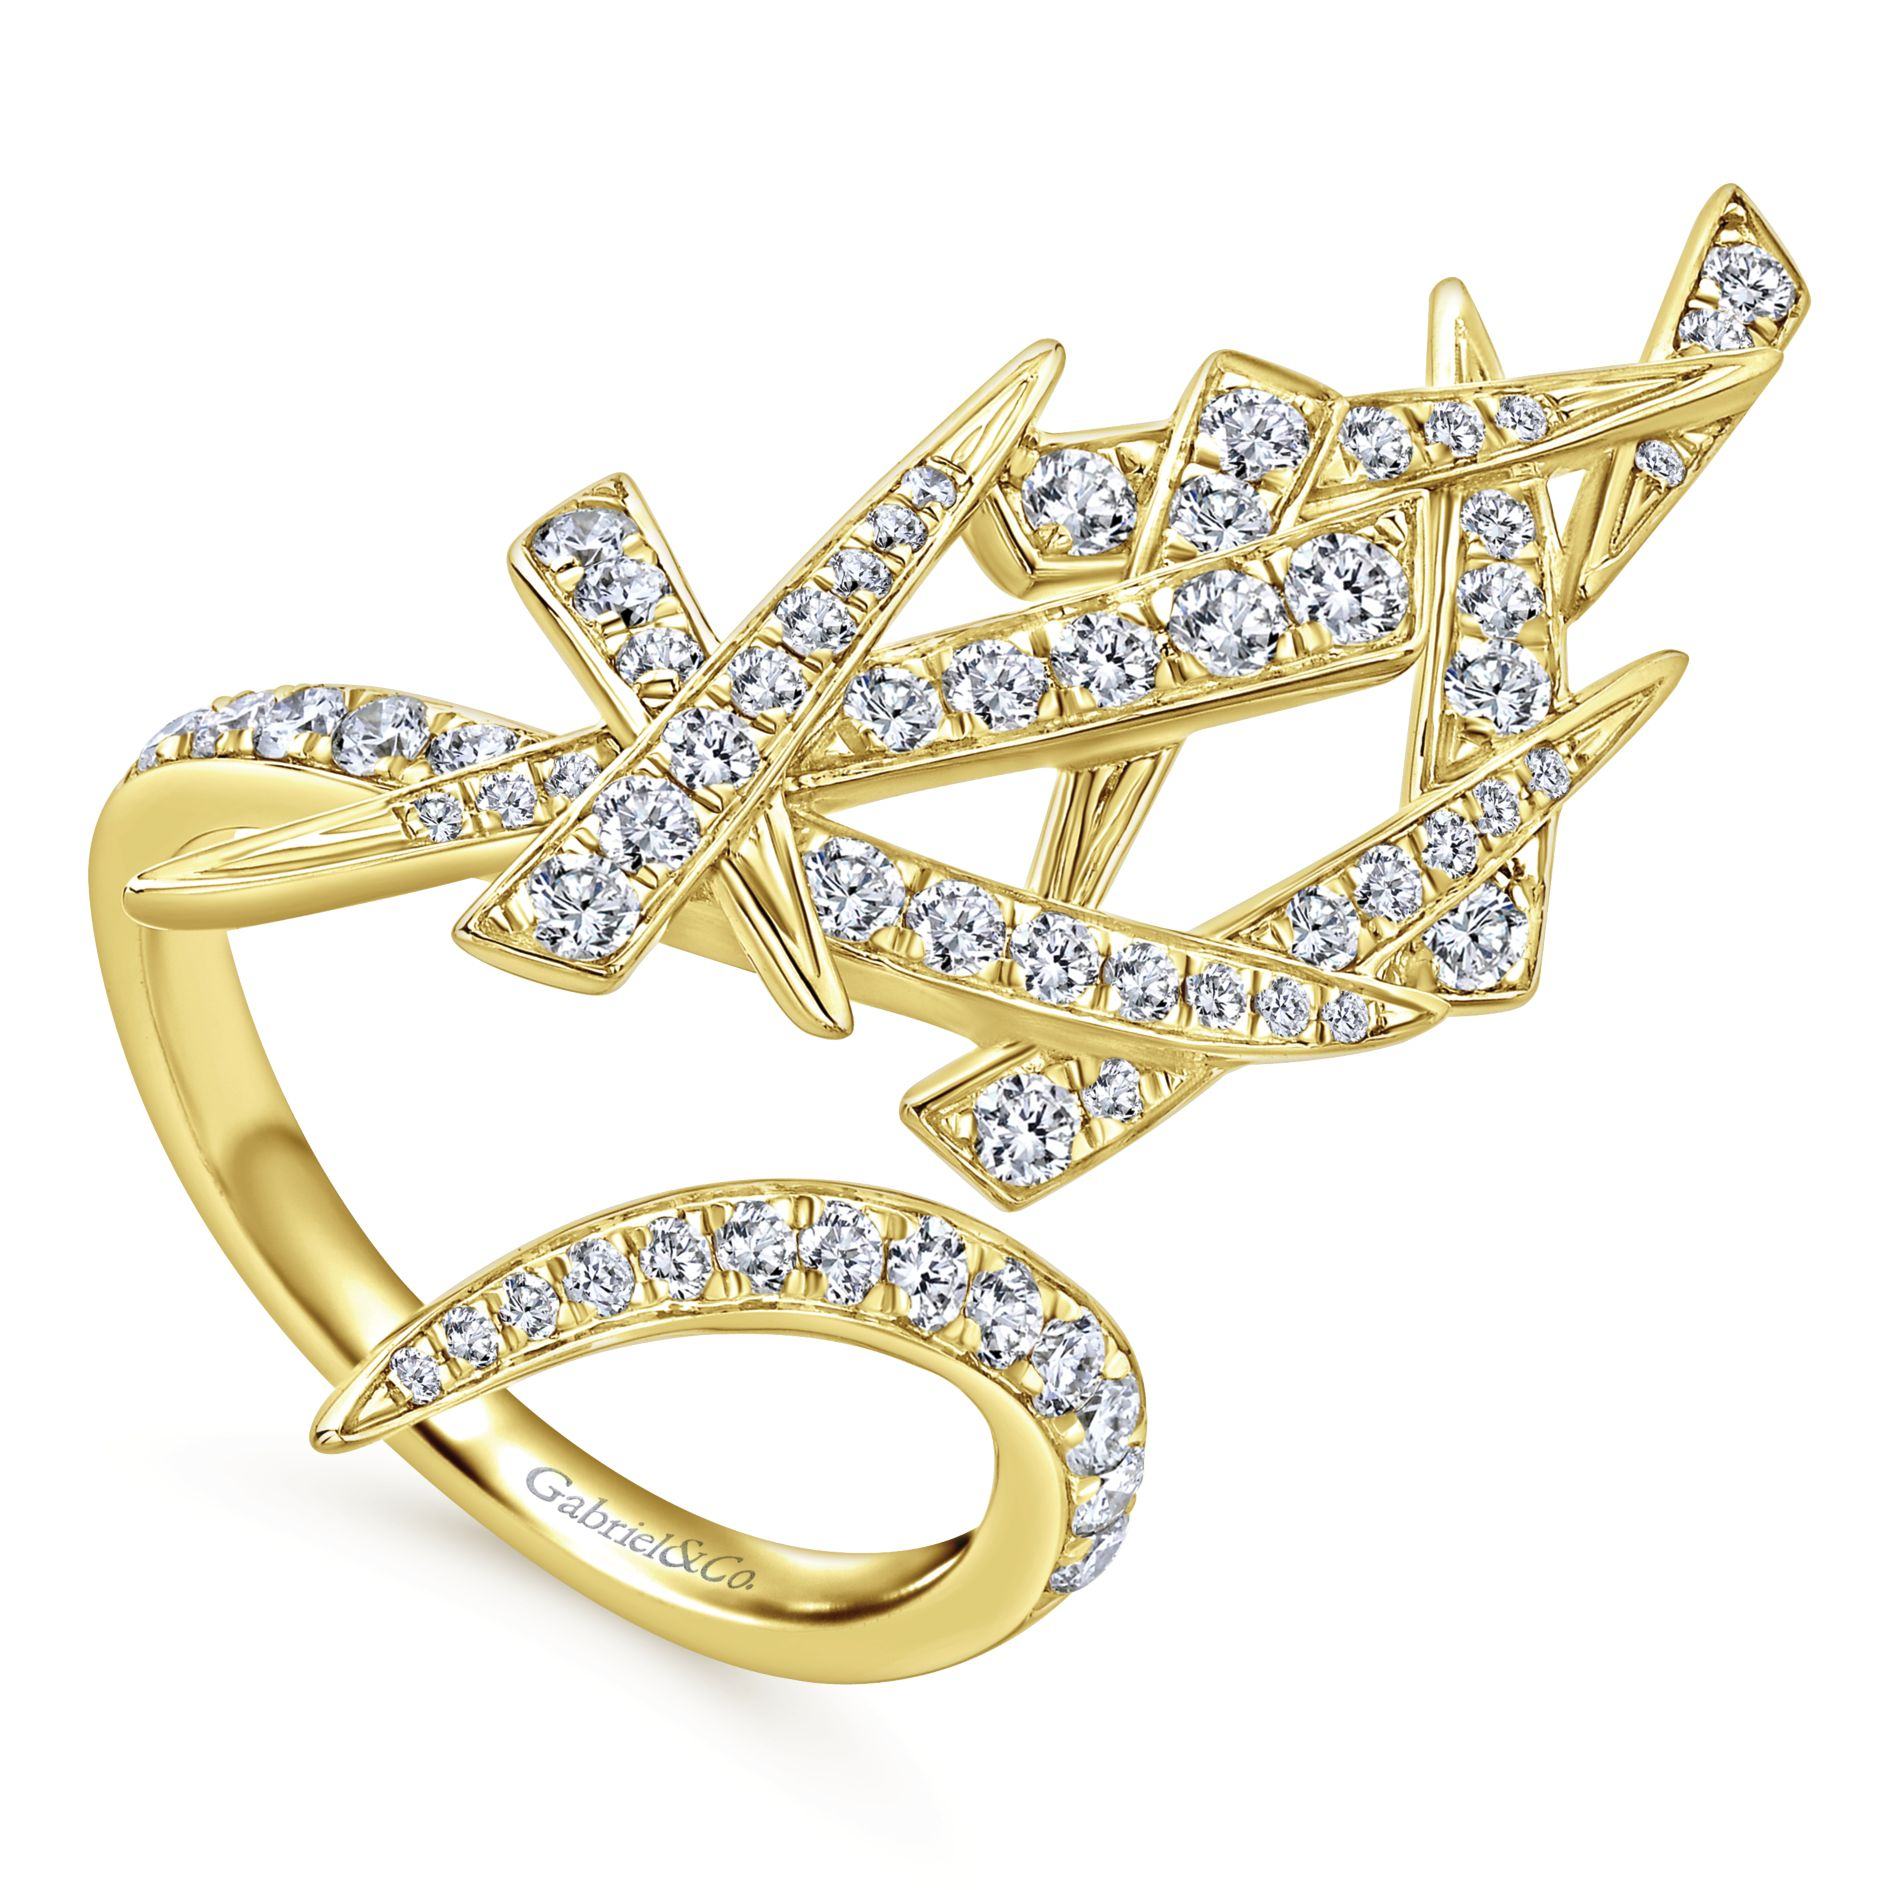 Rings - YELLOW GOLD STATEMENT DIAMOND LADIES RING - image #3